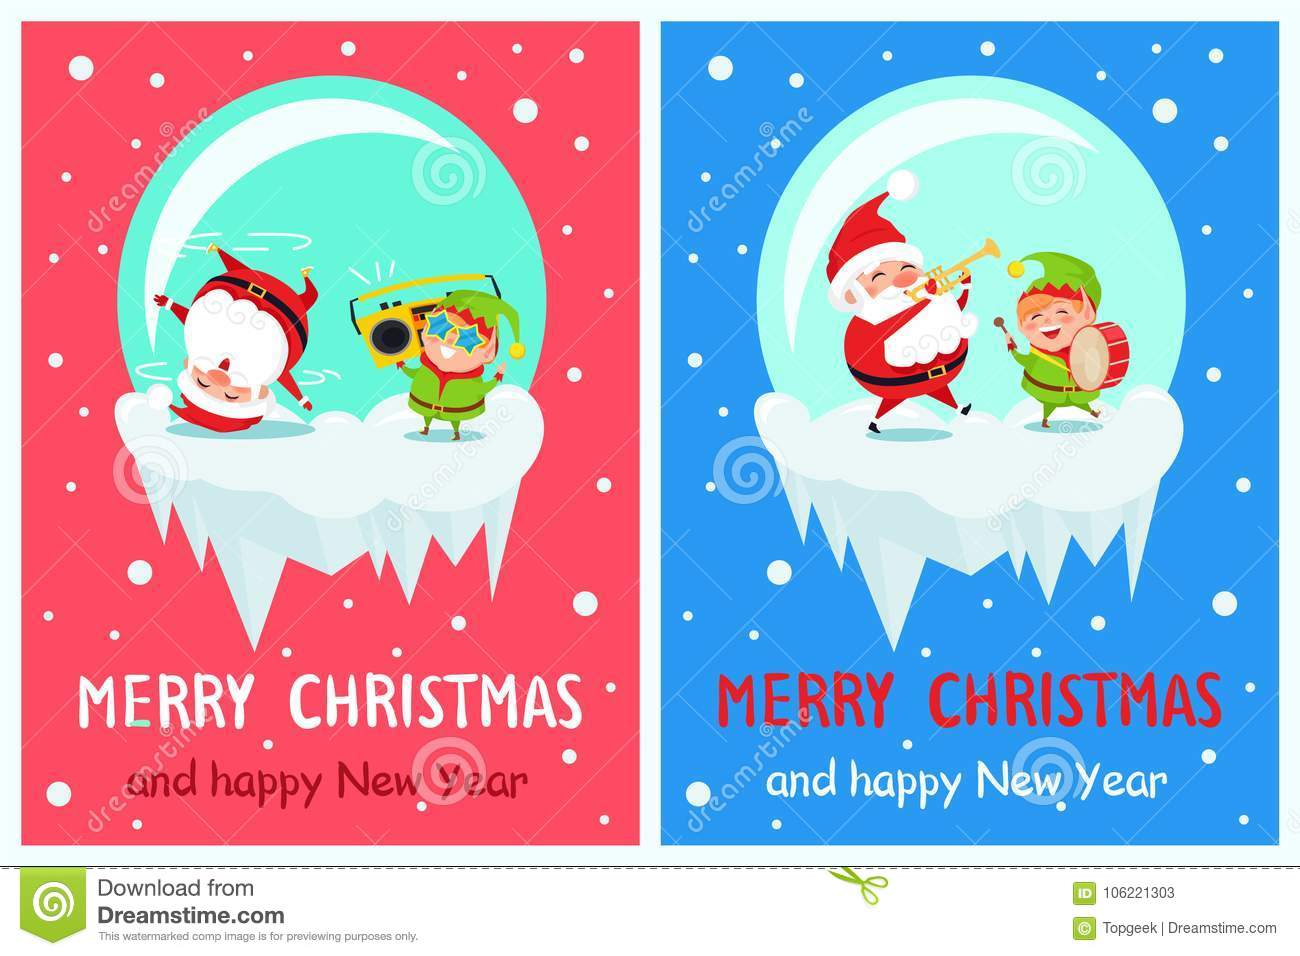 Merry christmas and happy new year greeting cards stock vector merry christmas and happy new year greeting cards m4hsunfo